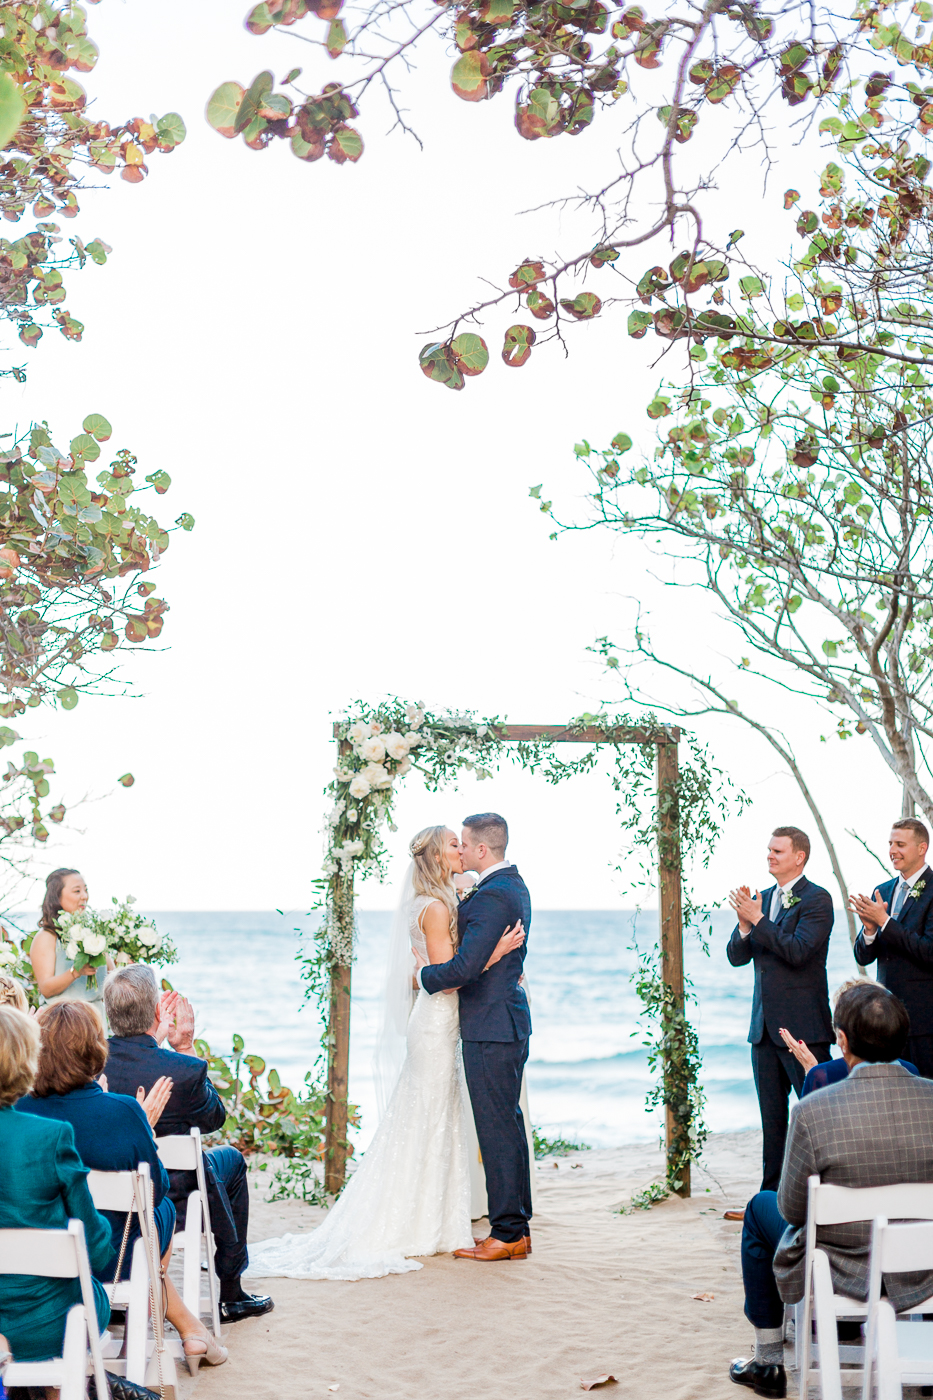 Laurabeth + Kevin - JUPITER BEACH resort  |  FLORIDA